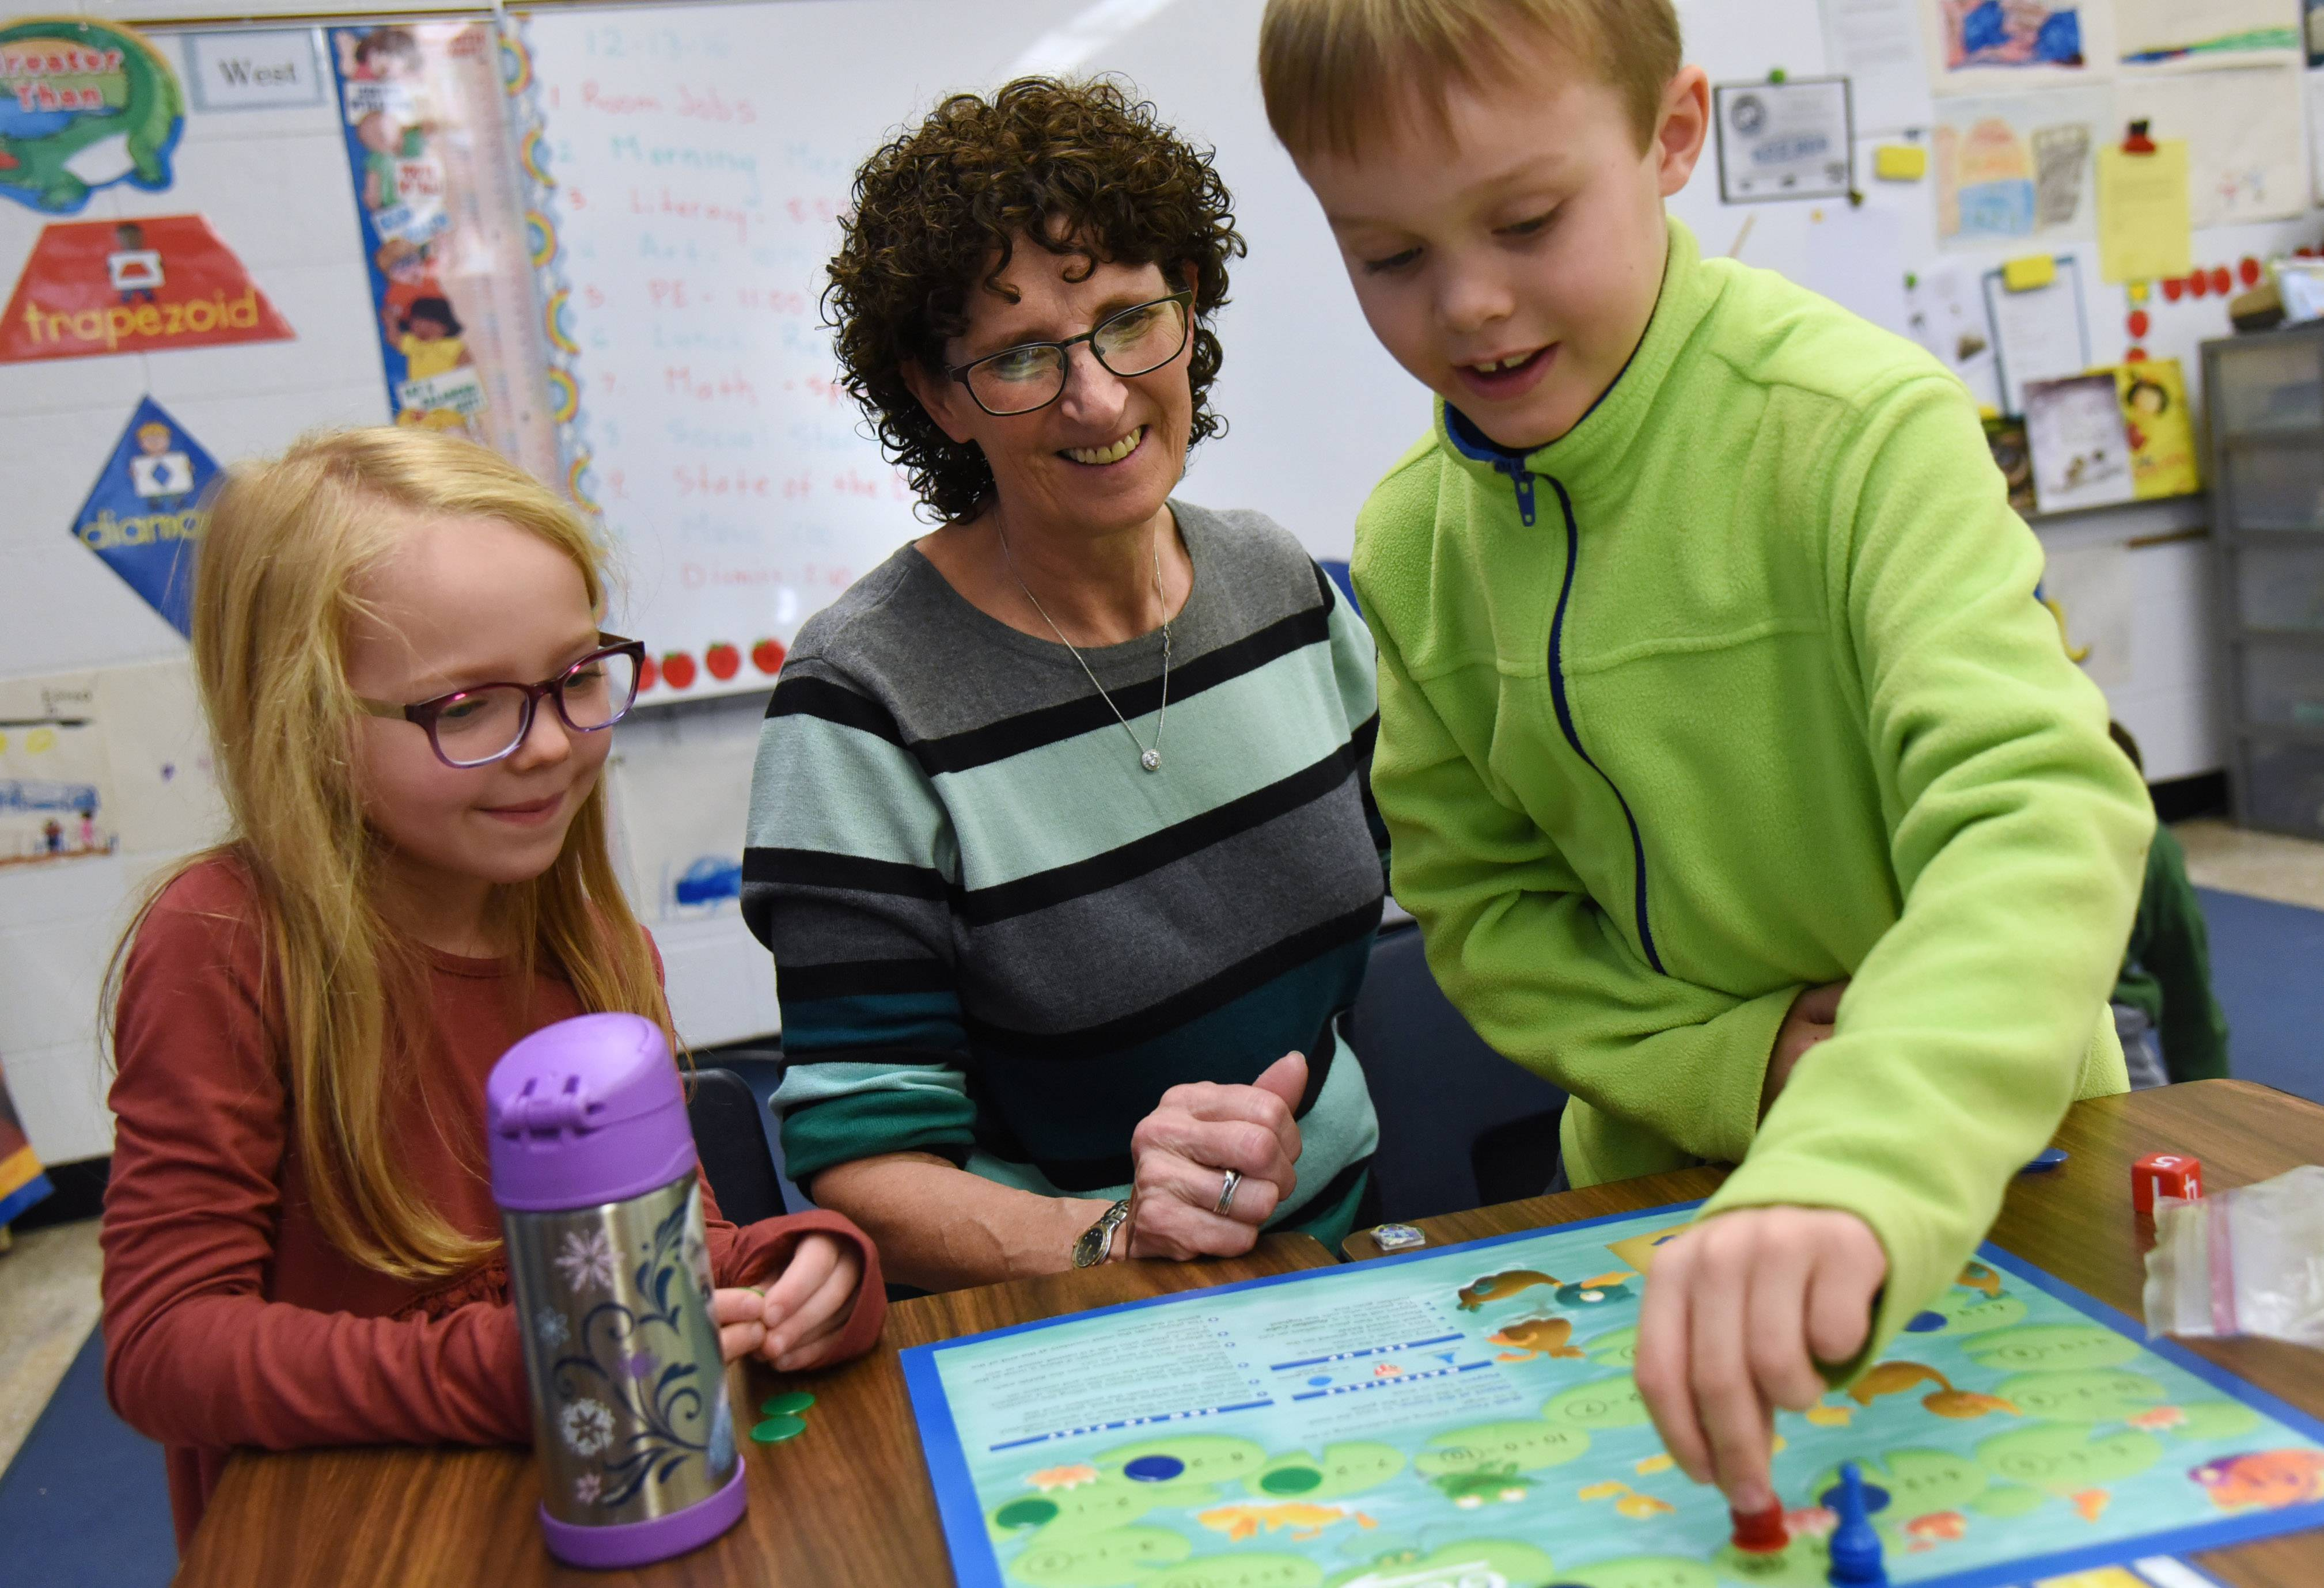 The top-paying elementary district: Rondout School first grade teacher Roxanne Greenberg is retiring after 38 years in the classroom. The one-school district has the highest average teacher salary -- $95,237 -- among elementary districts in the region.